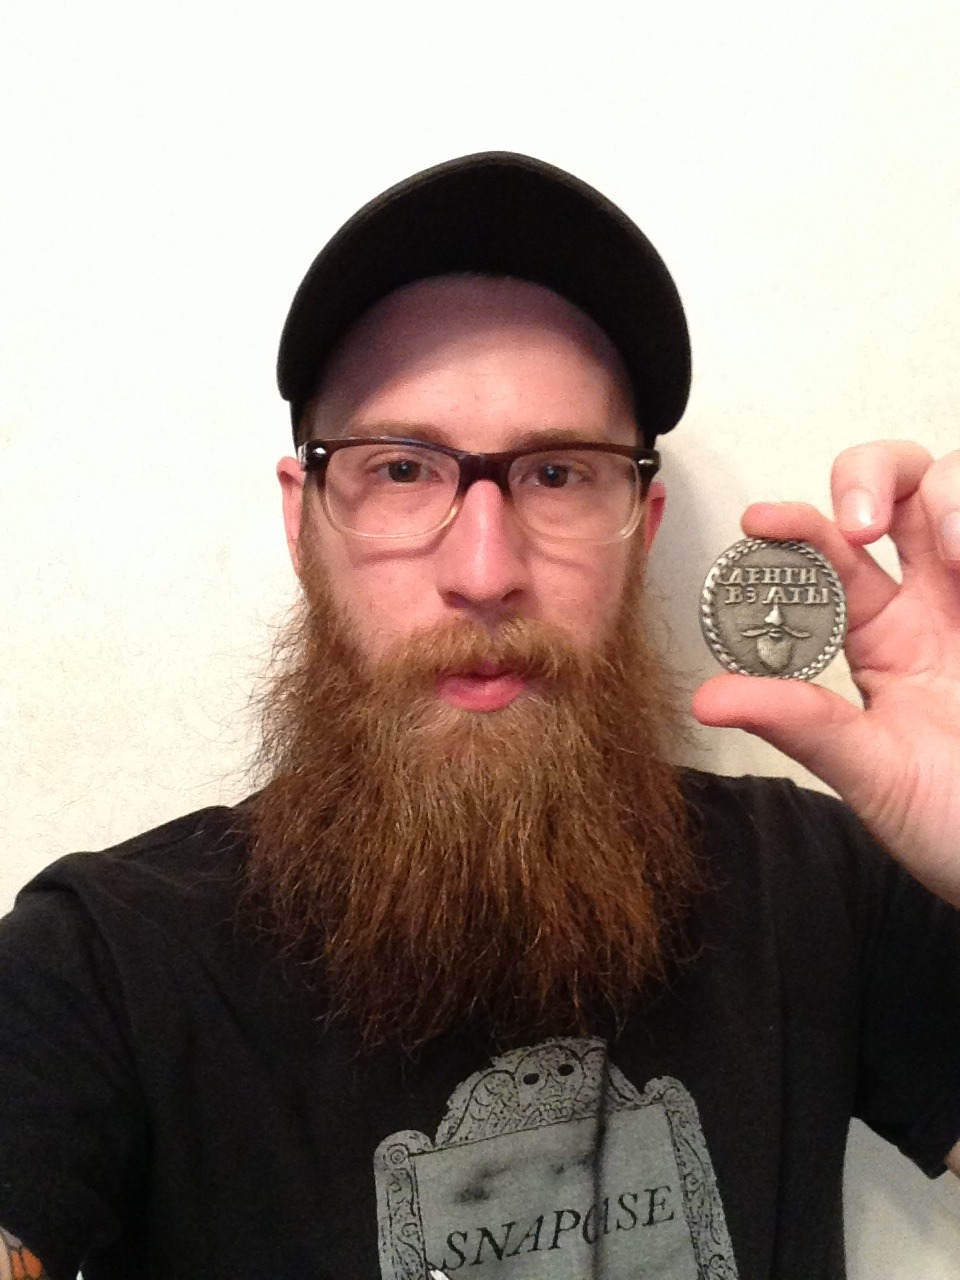 Token received! Thanks guys! -Chris  Chris with his Beard Token.